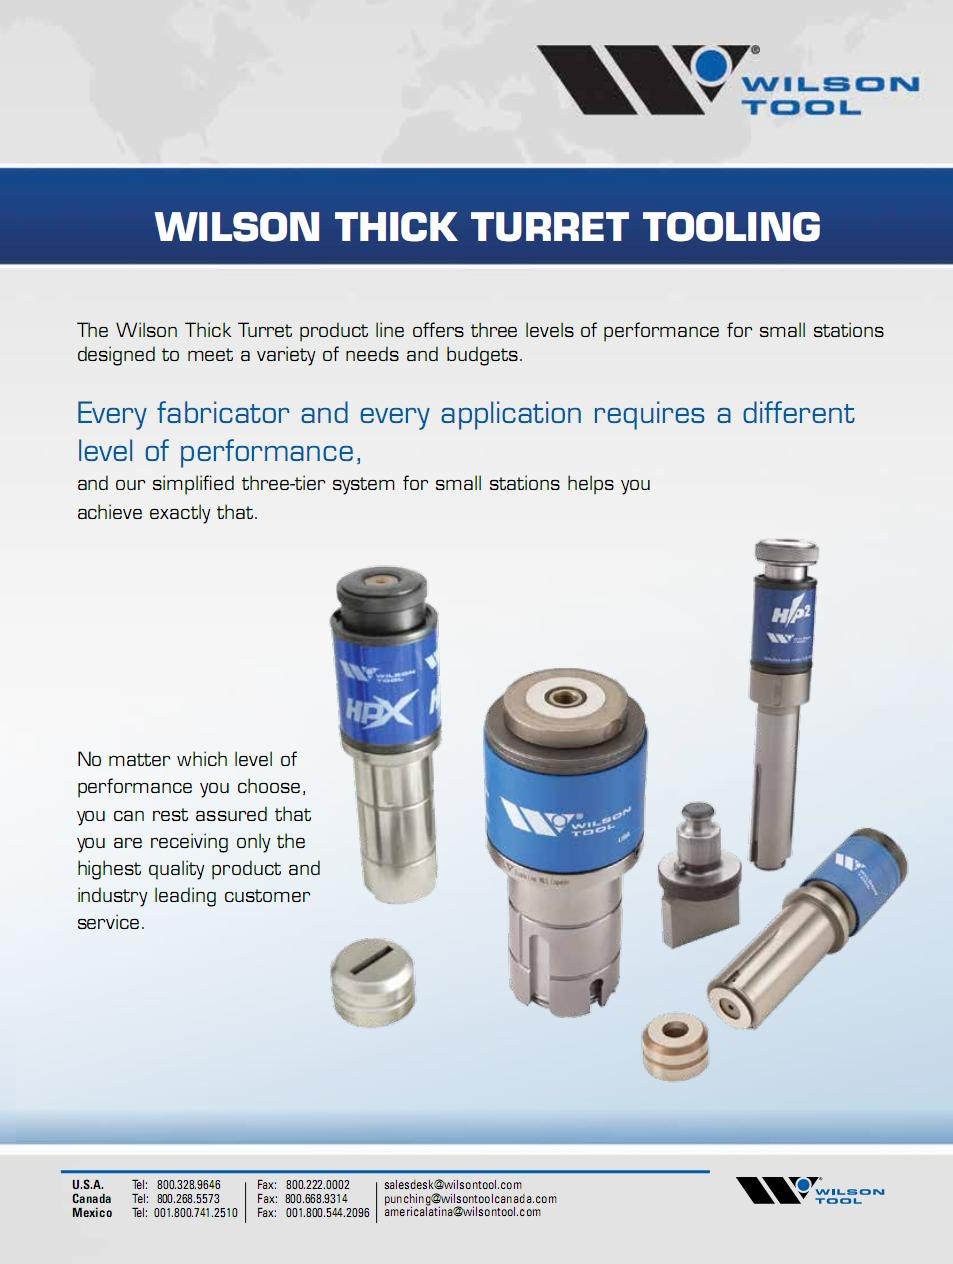 Wilson Thick Turret Tooling